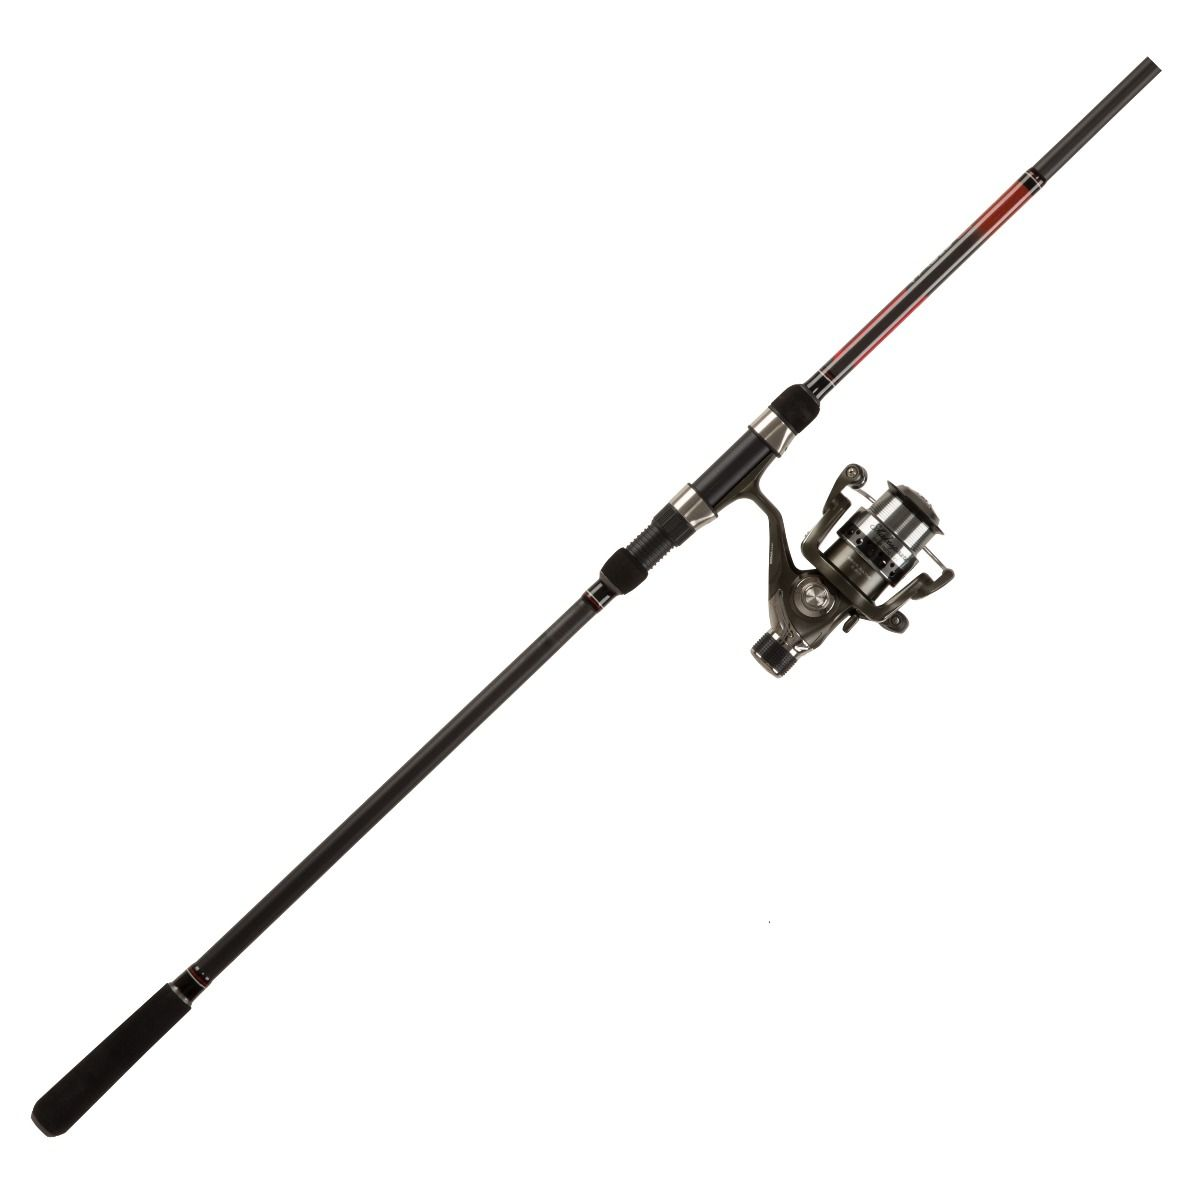 Sigma Specimen Combo Rod And Reel